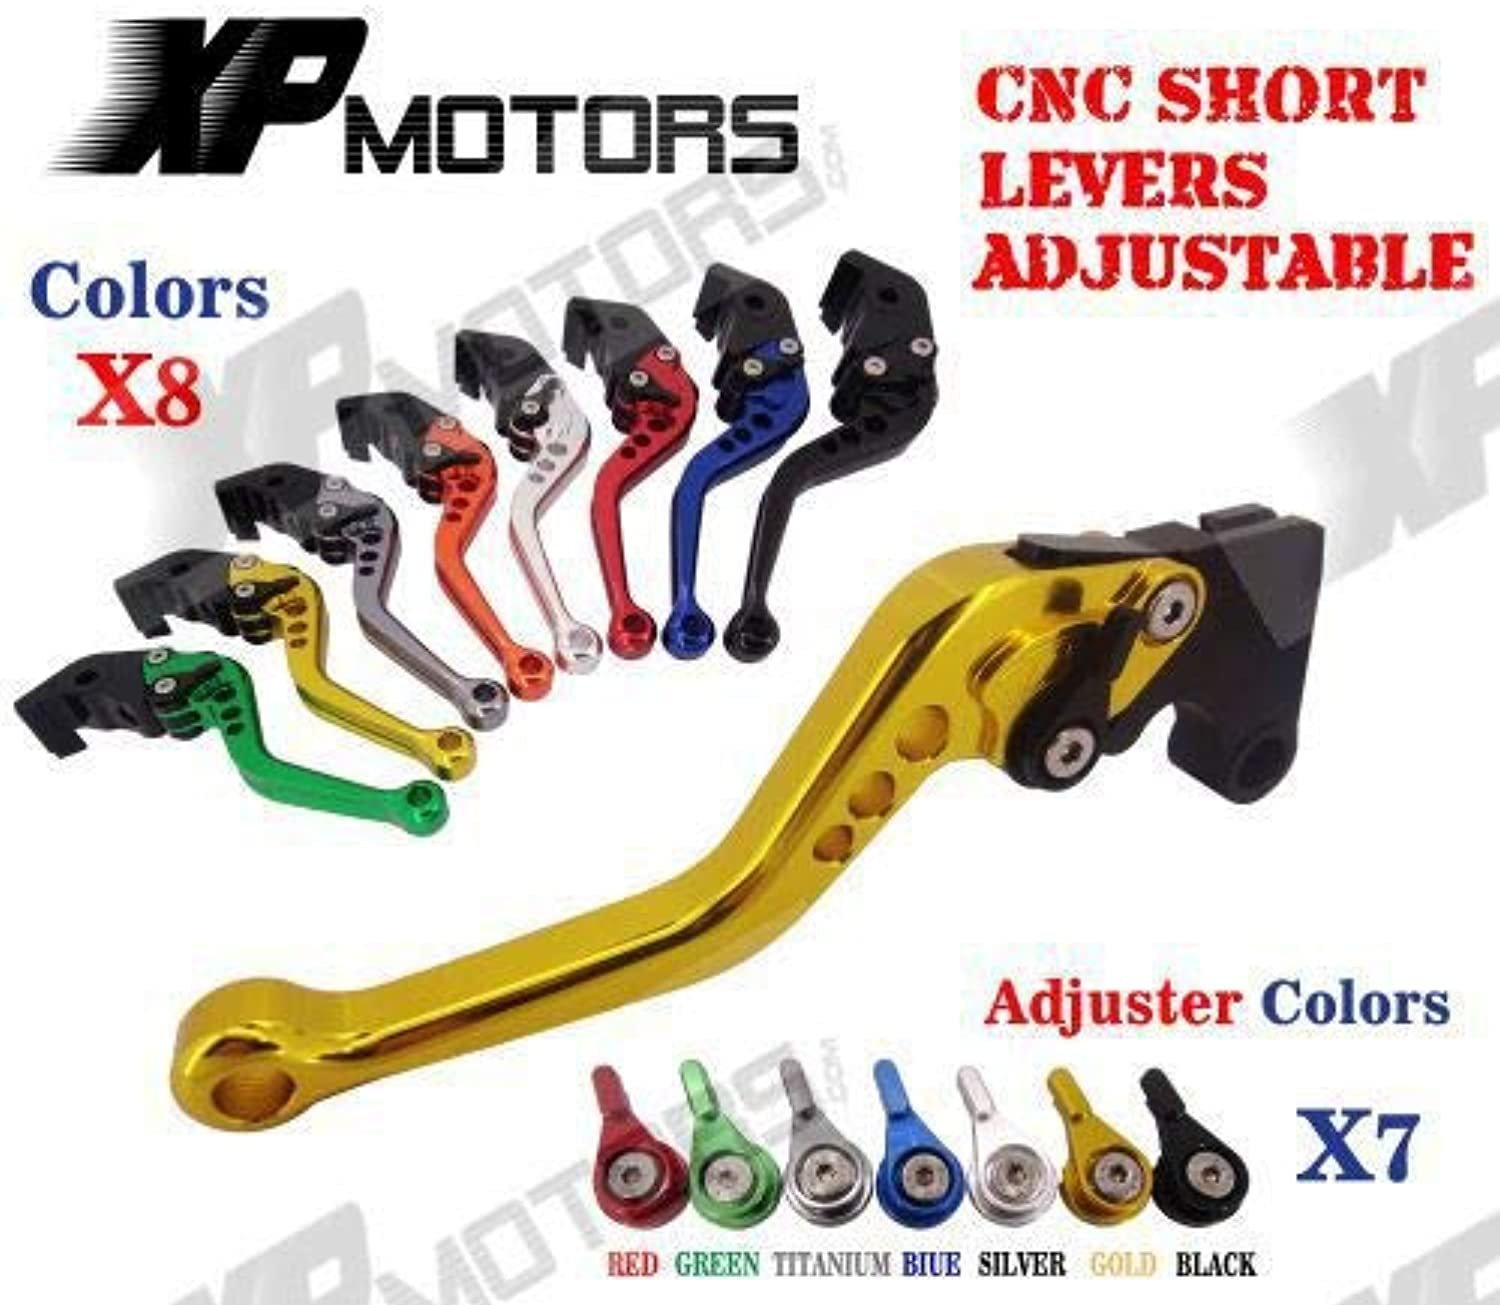 Brakes CNC Short Adjustable Brake Clutch Levers for Suzuki GsxR600 GsxR750 Gsxr600 Gsxr750 K4 K5 2004 2005 Lever with Adjuster